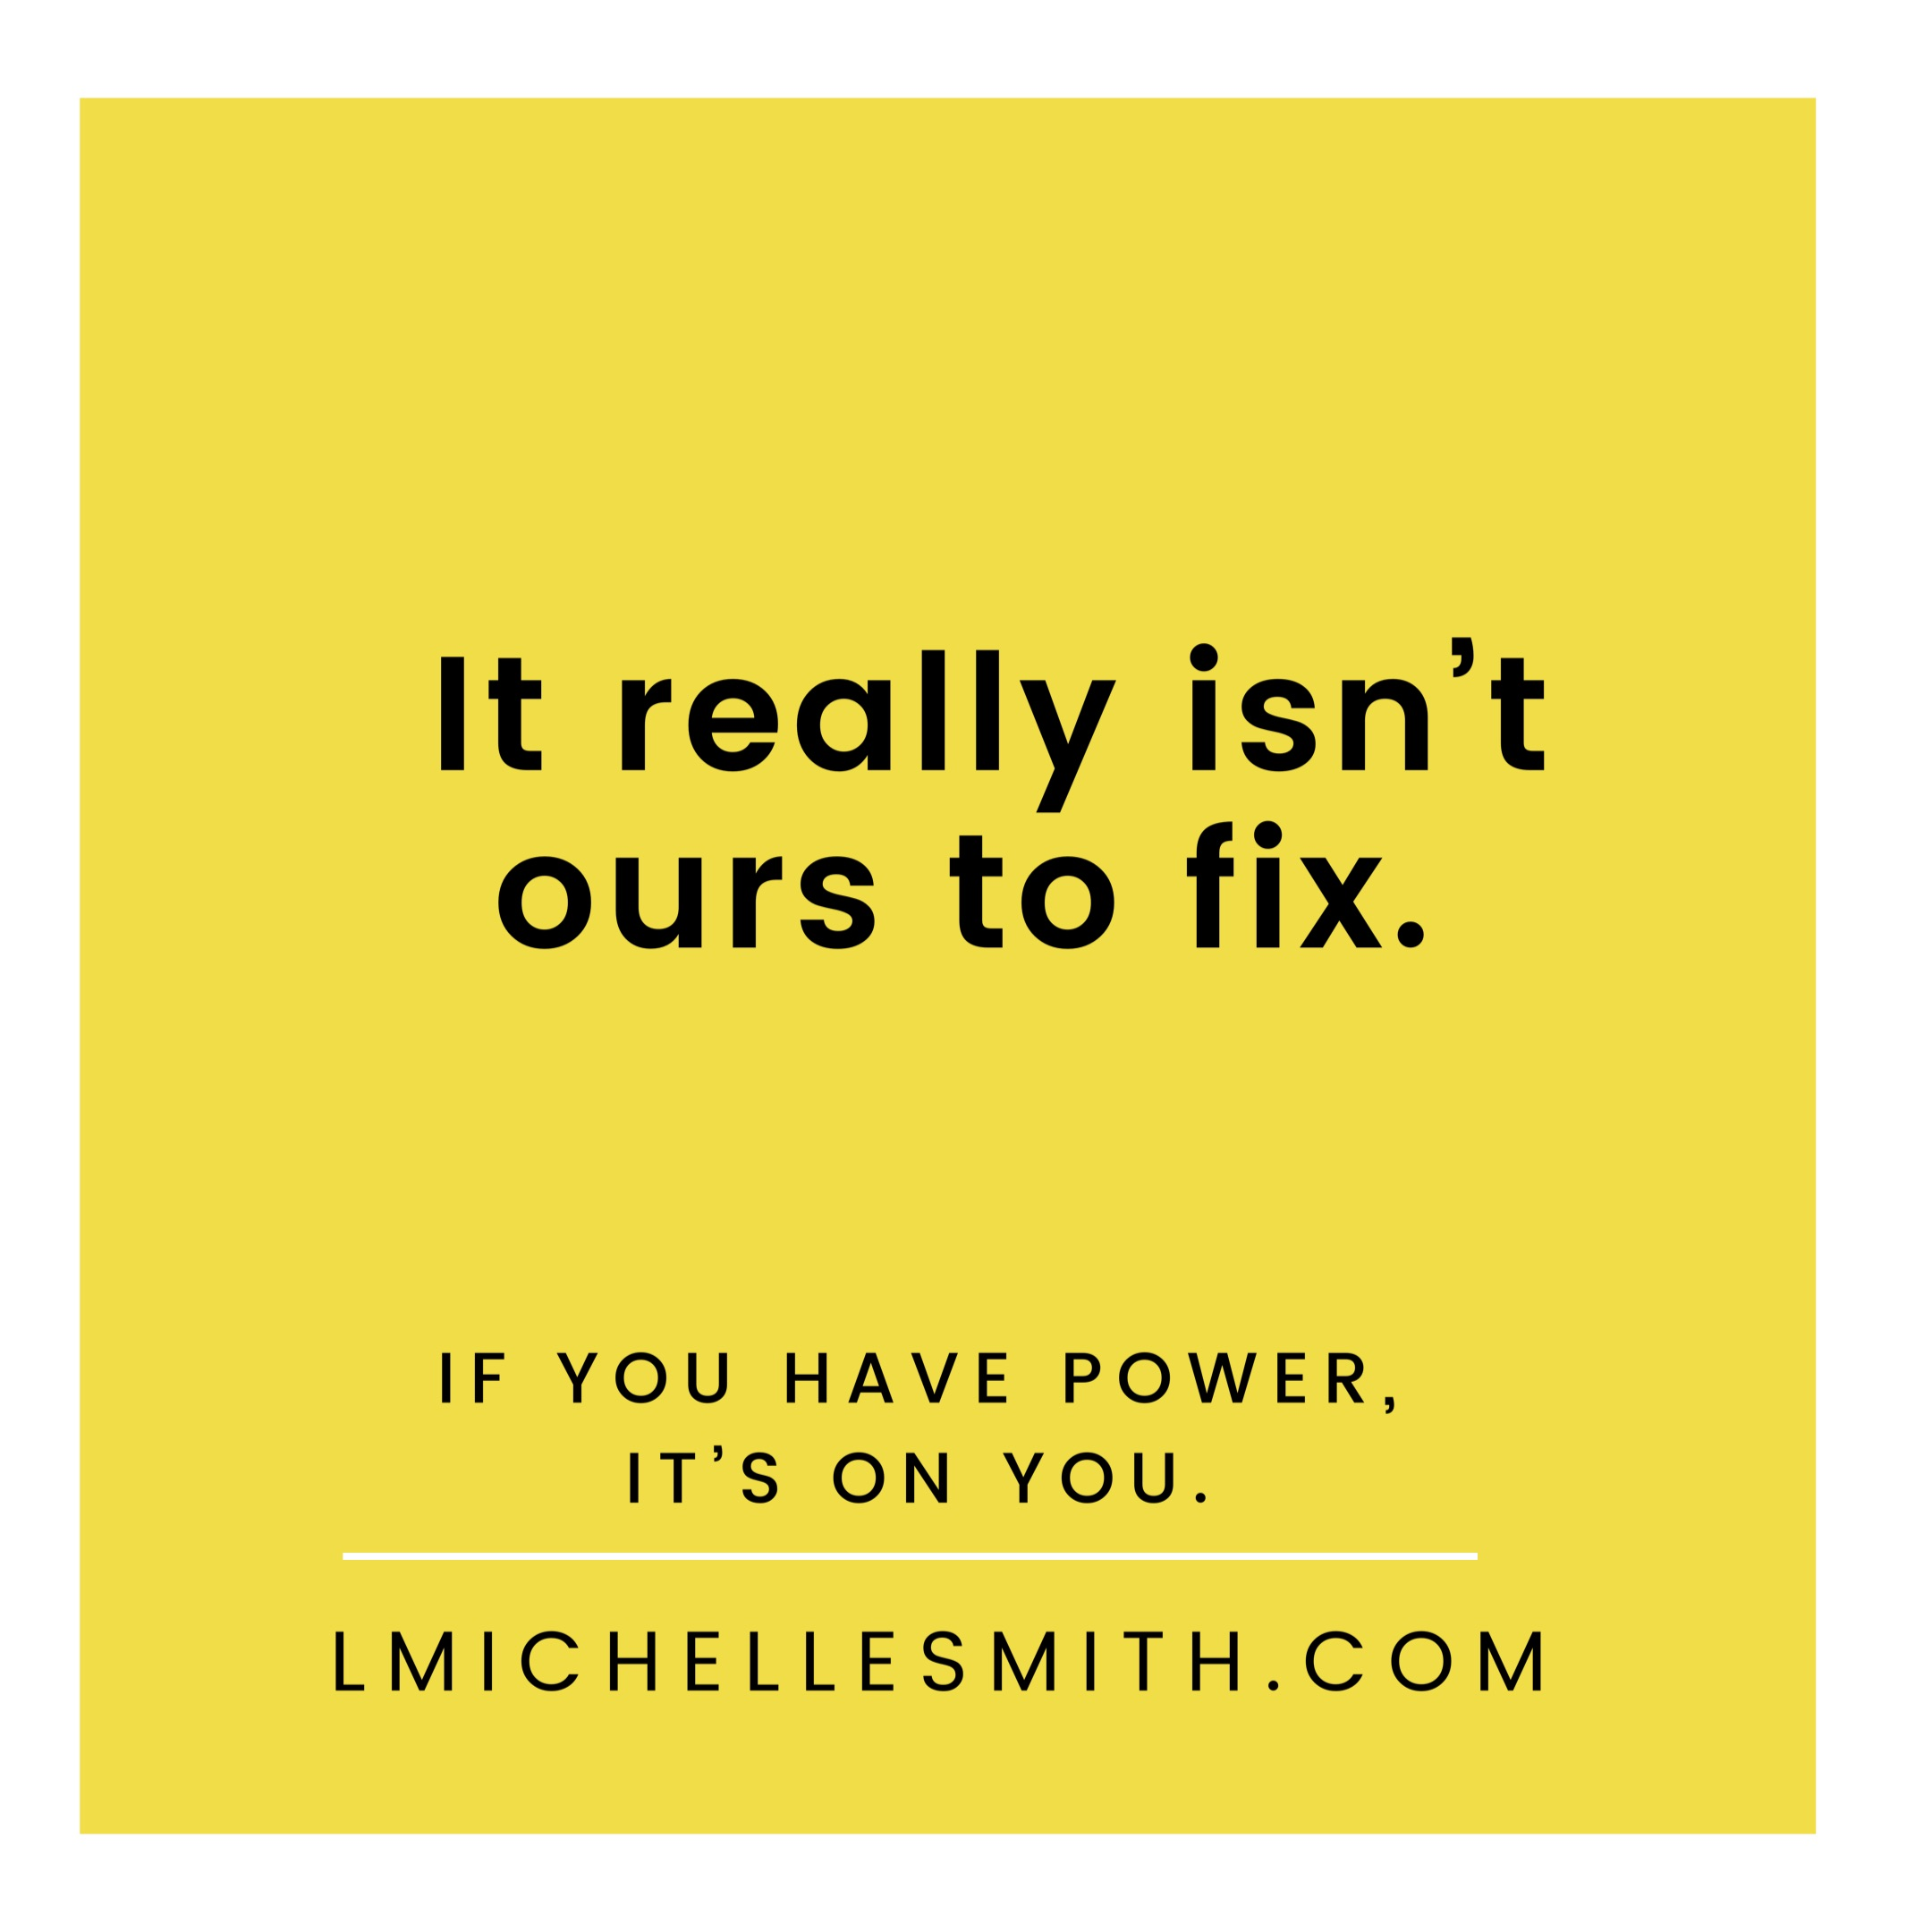 It really isn't ours to fix